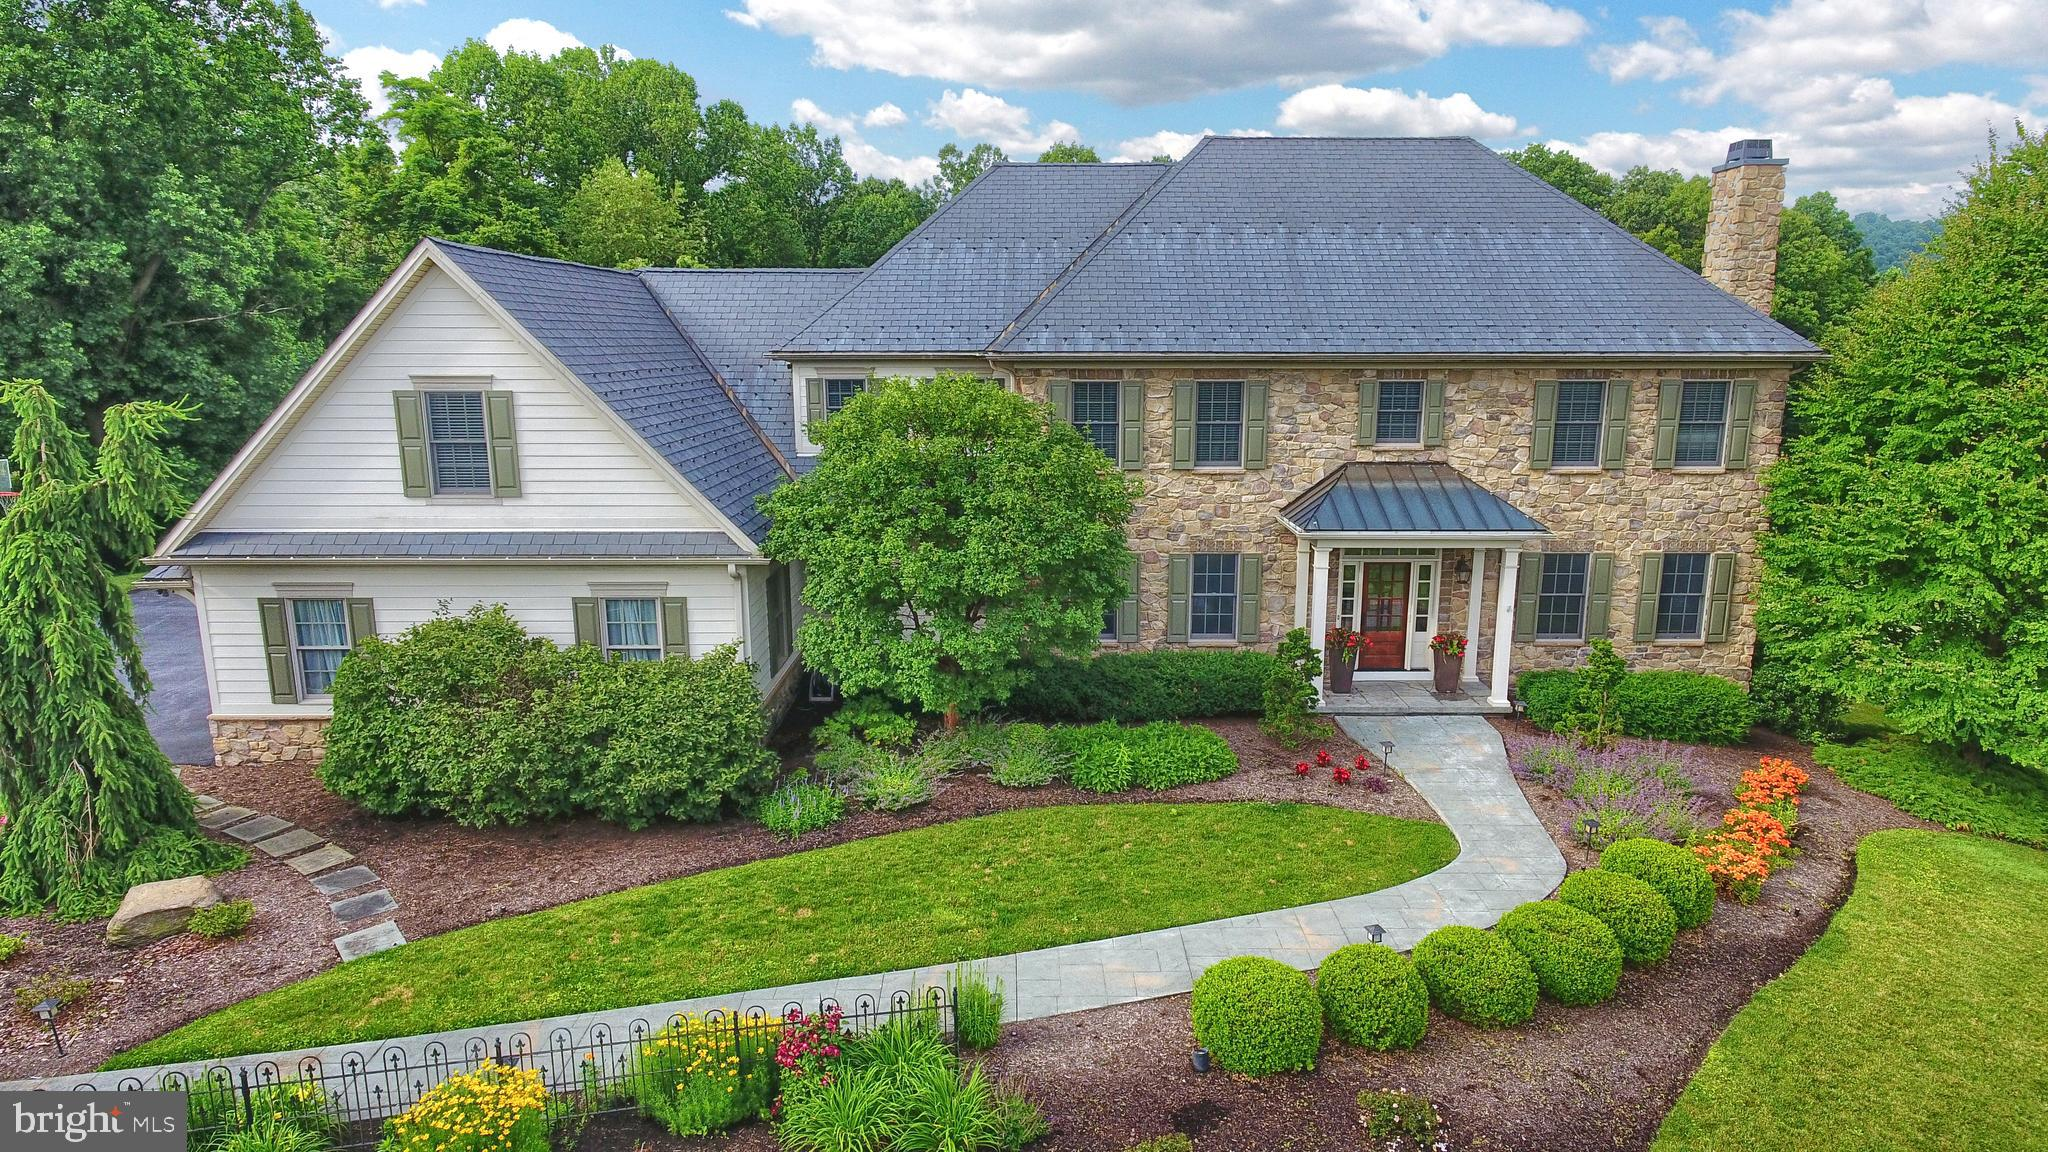 644 Southridge Drive, Mechanicsburg, PA 17055